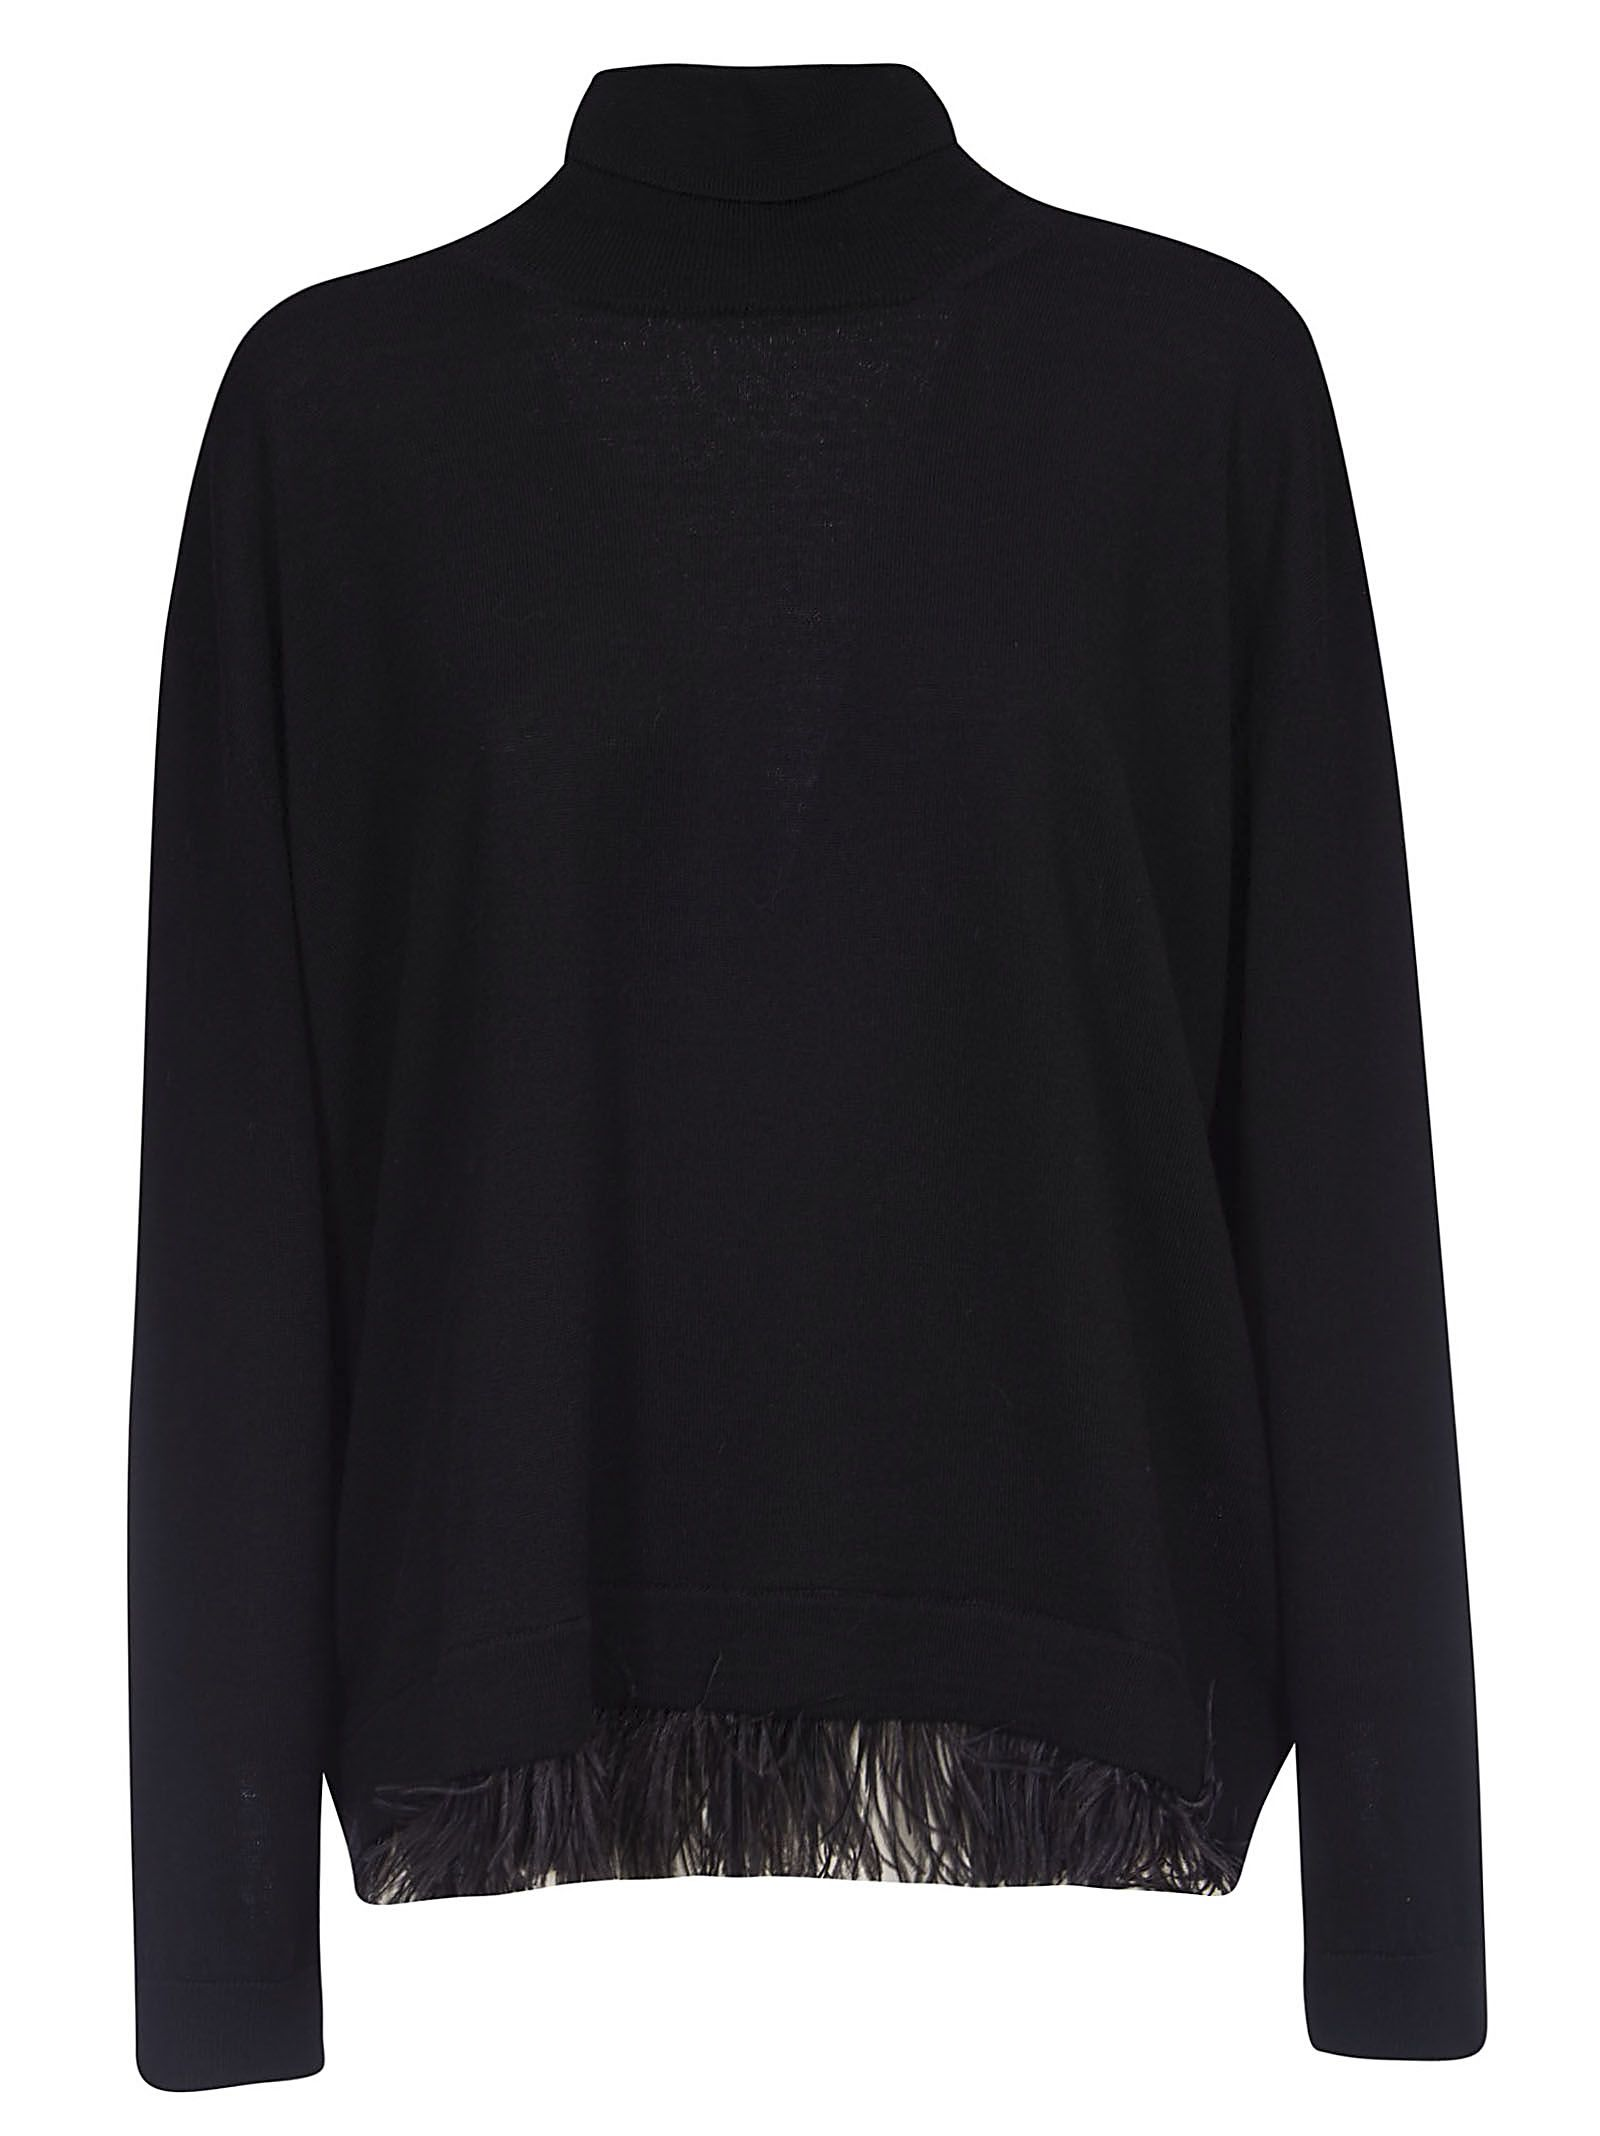 Parosh Fringed Turtleneck Sweater